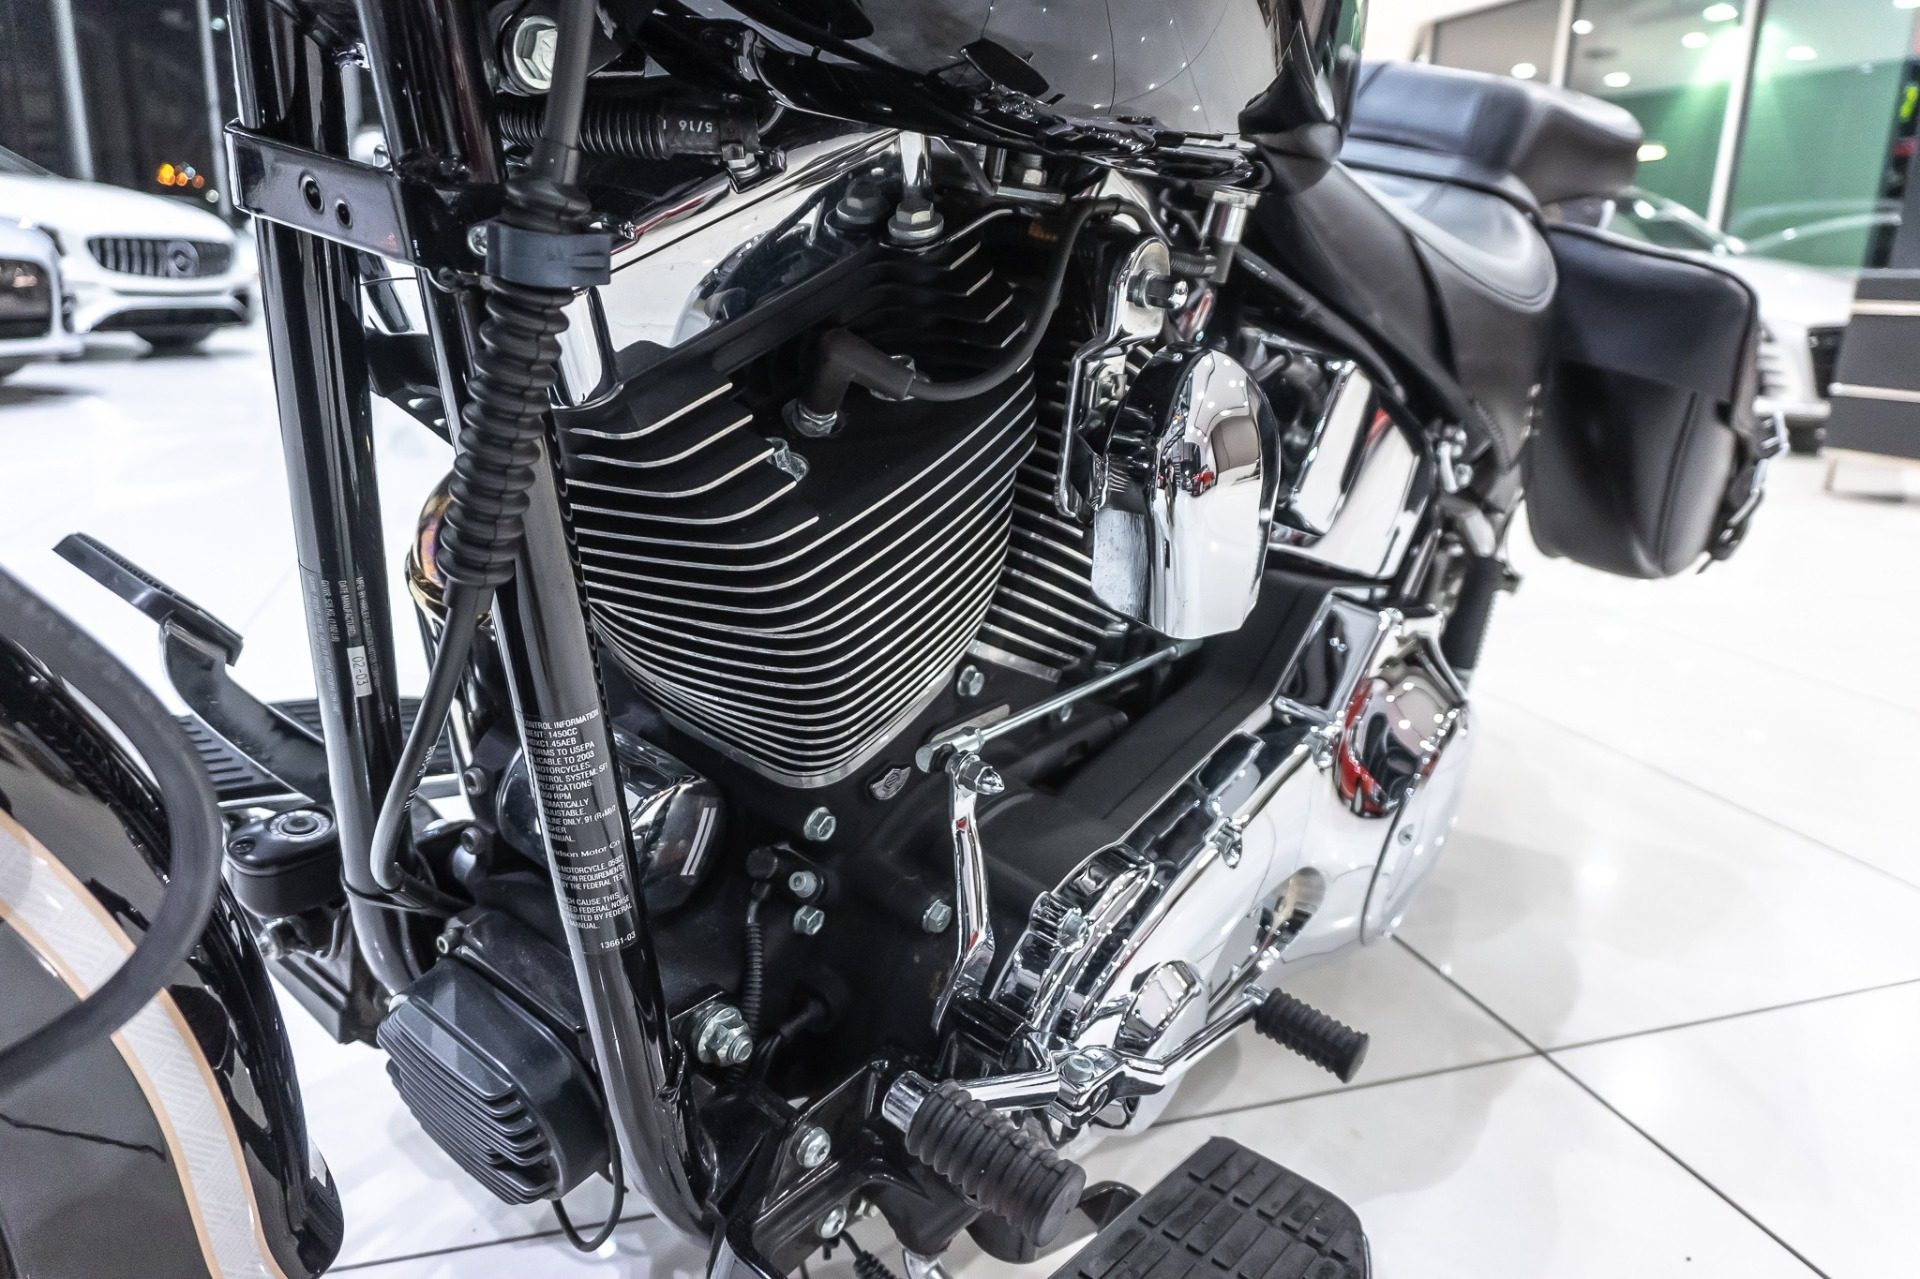 Used-2003-Harley-Davidson-FXST-SOFTAIL-FATBOY-100TH-ANNIVERSARY-EDITION-1450CC-ONLY-3400-MILES